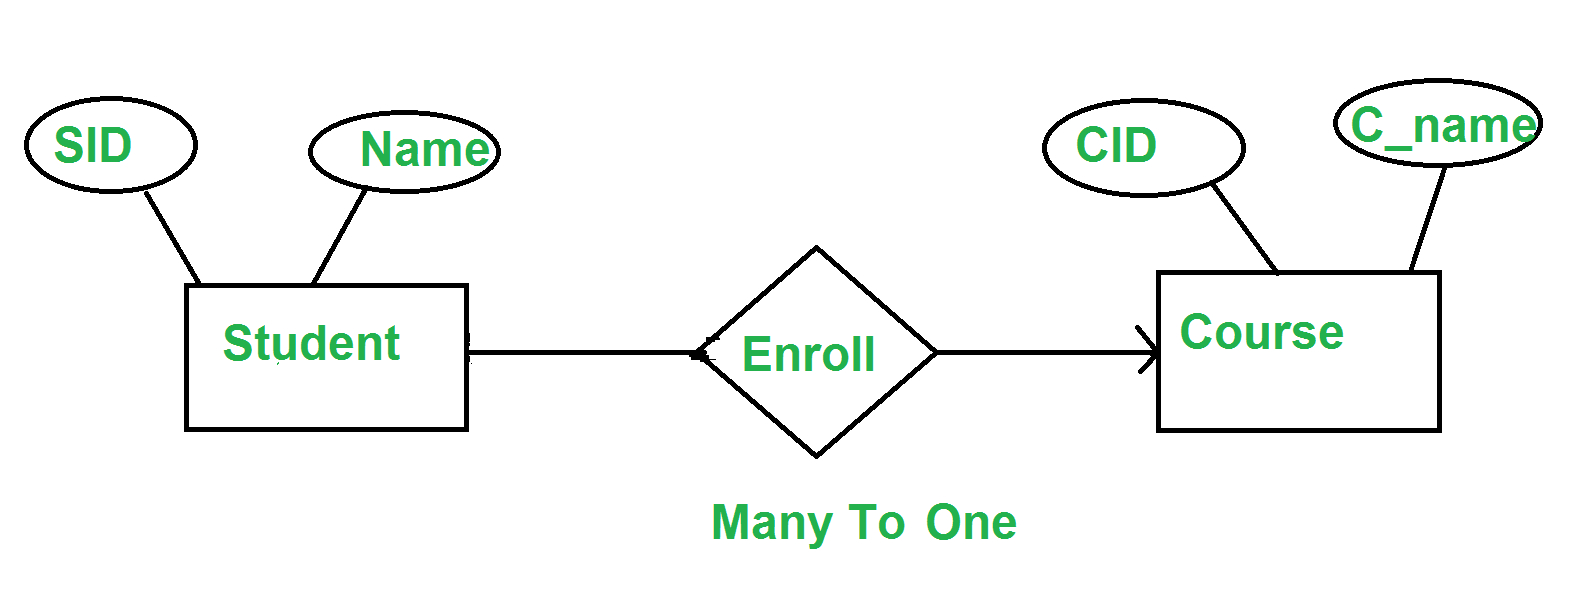 Minimization Of Er Diagrams - Geeksforgeeks intended for Weak Relationship Er Diagram